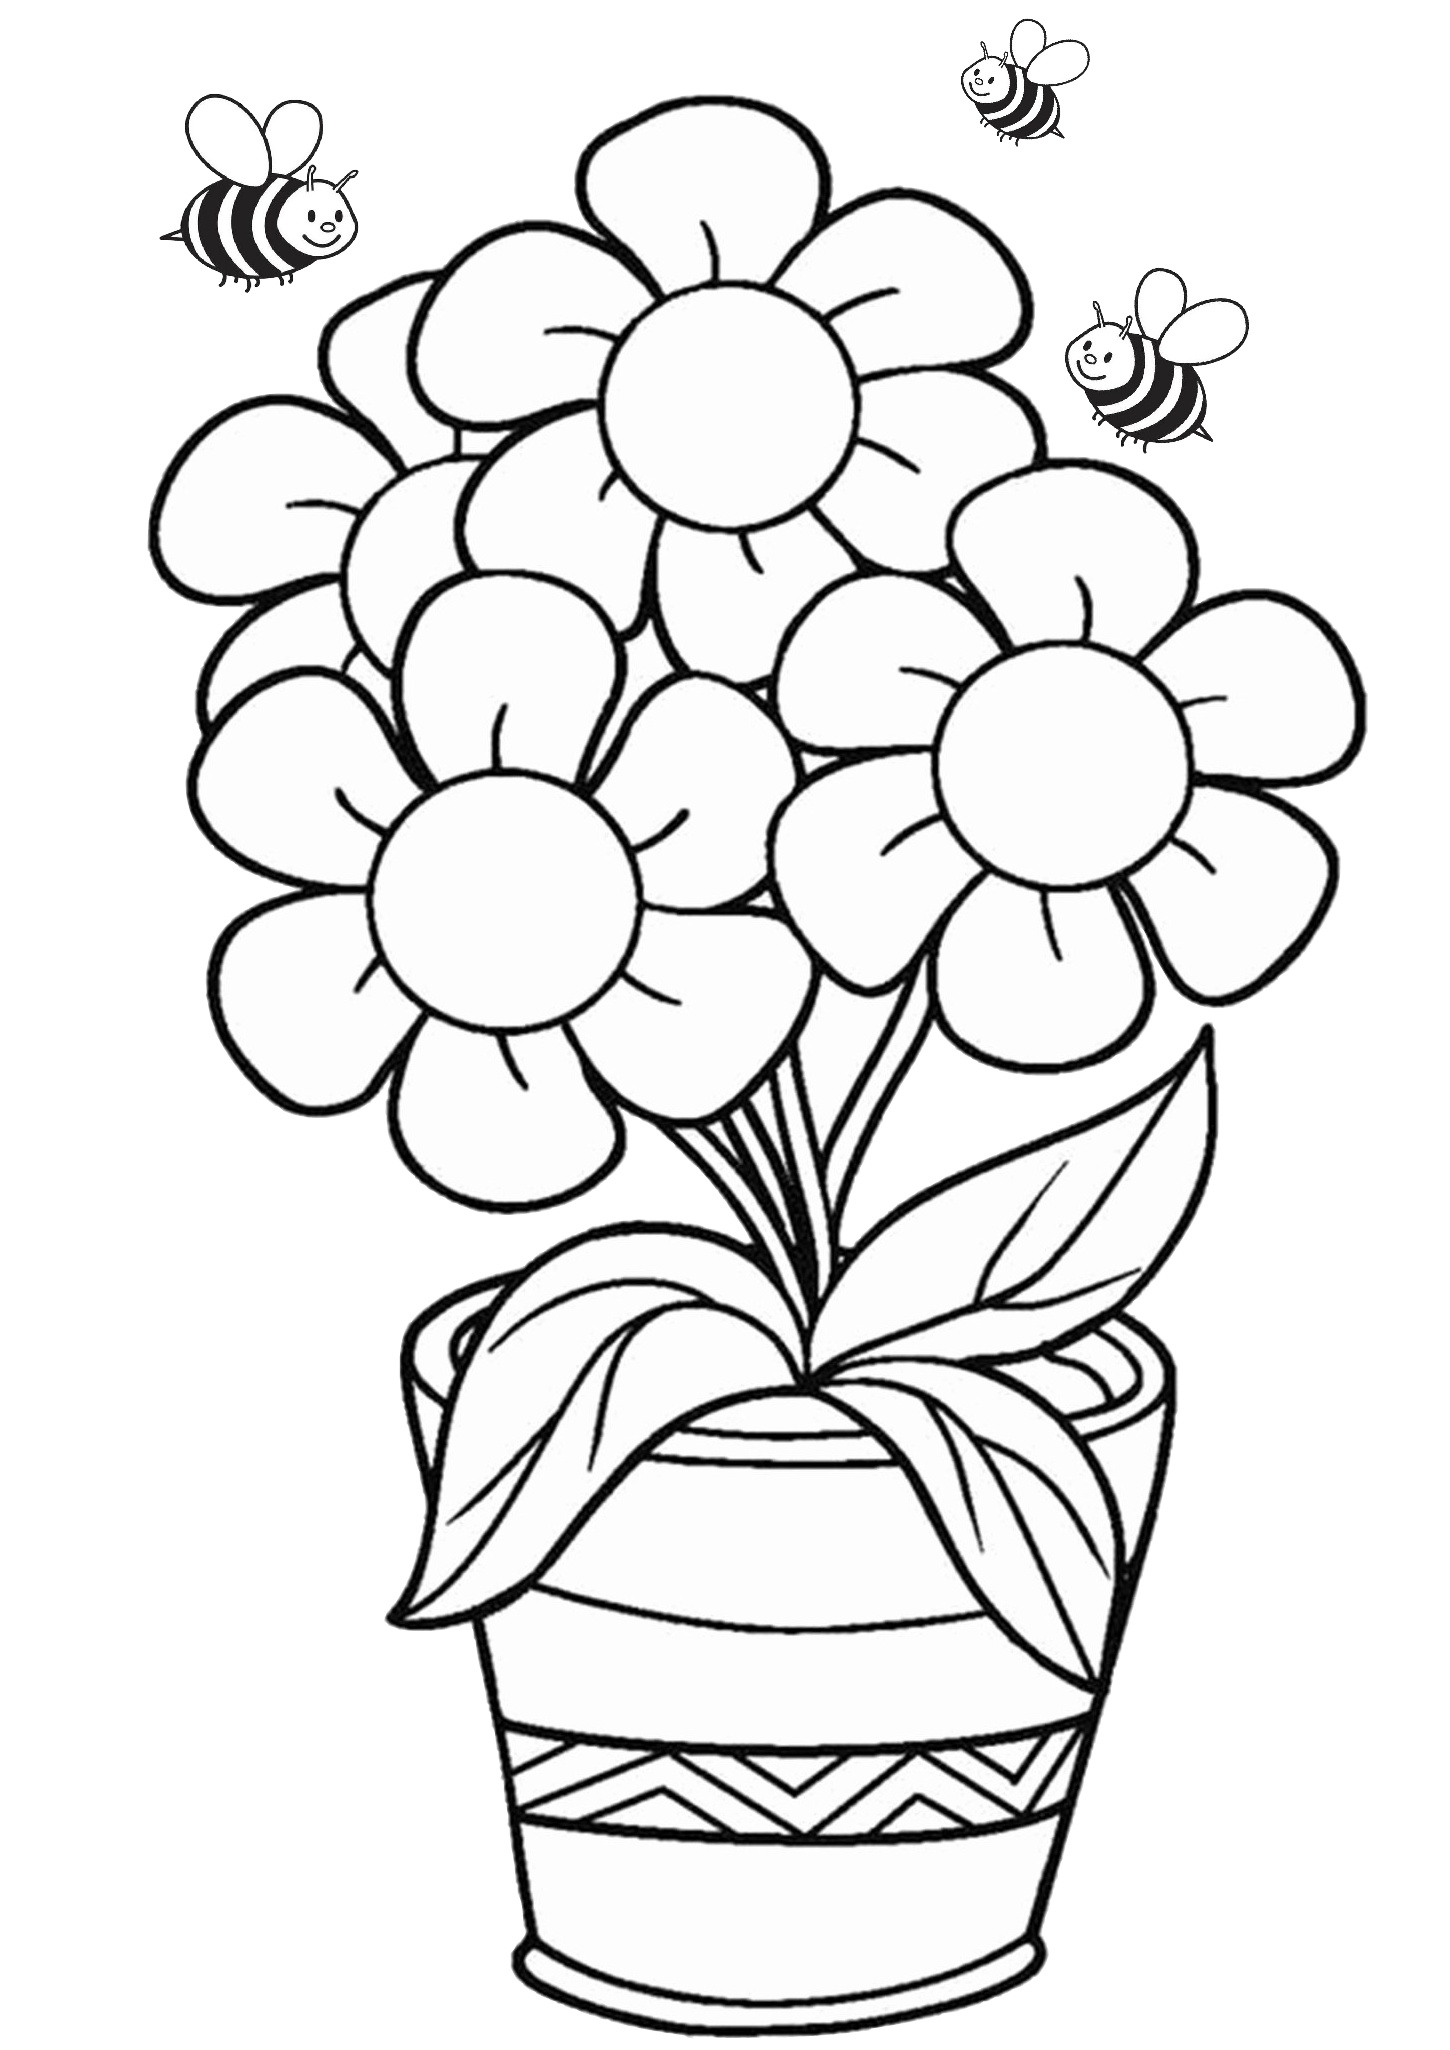 flower pattern to color flower pattern to color pattern color to flower